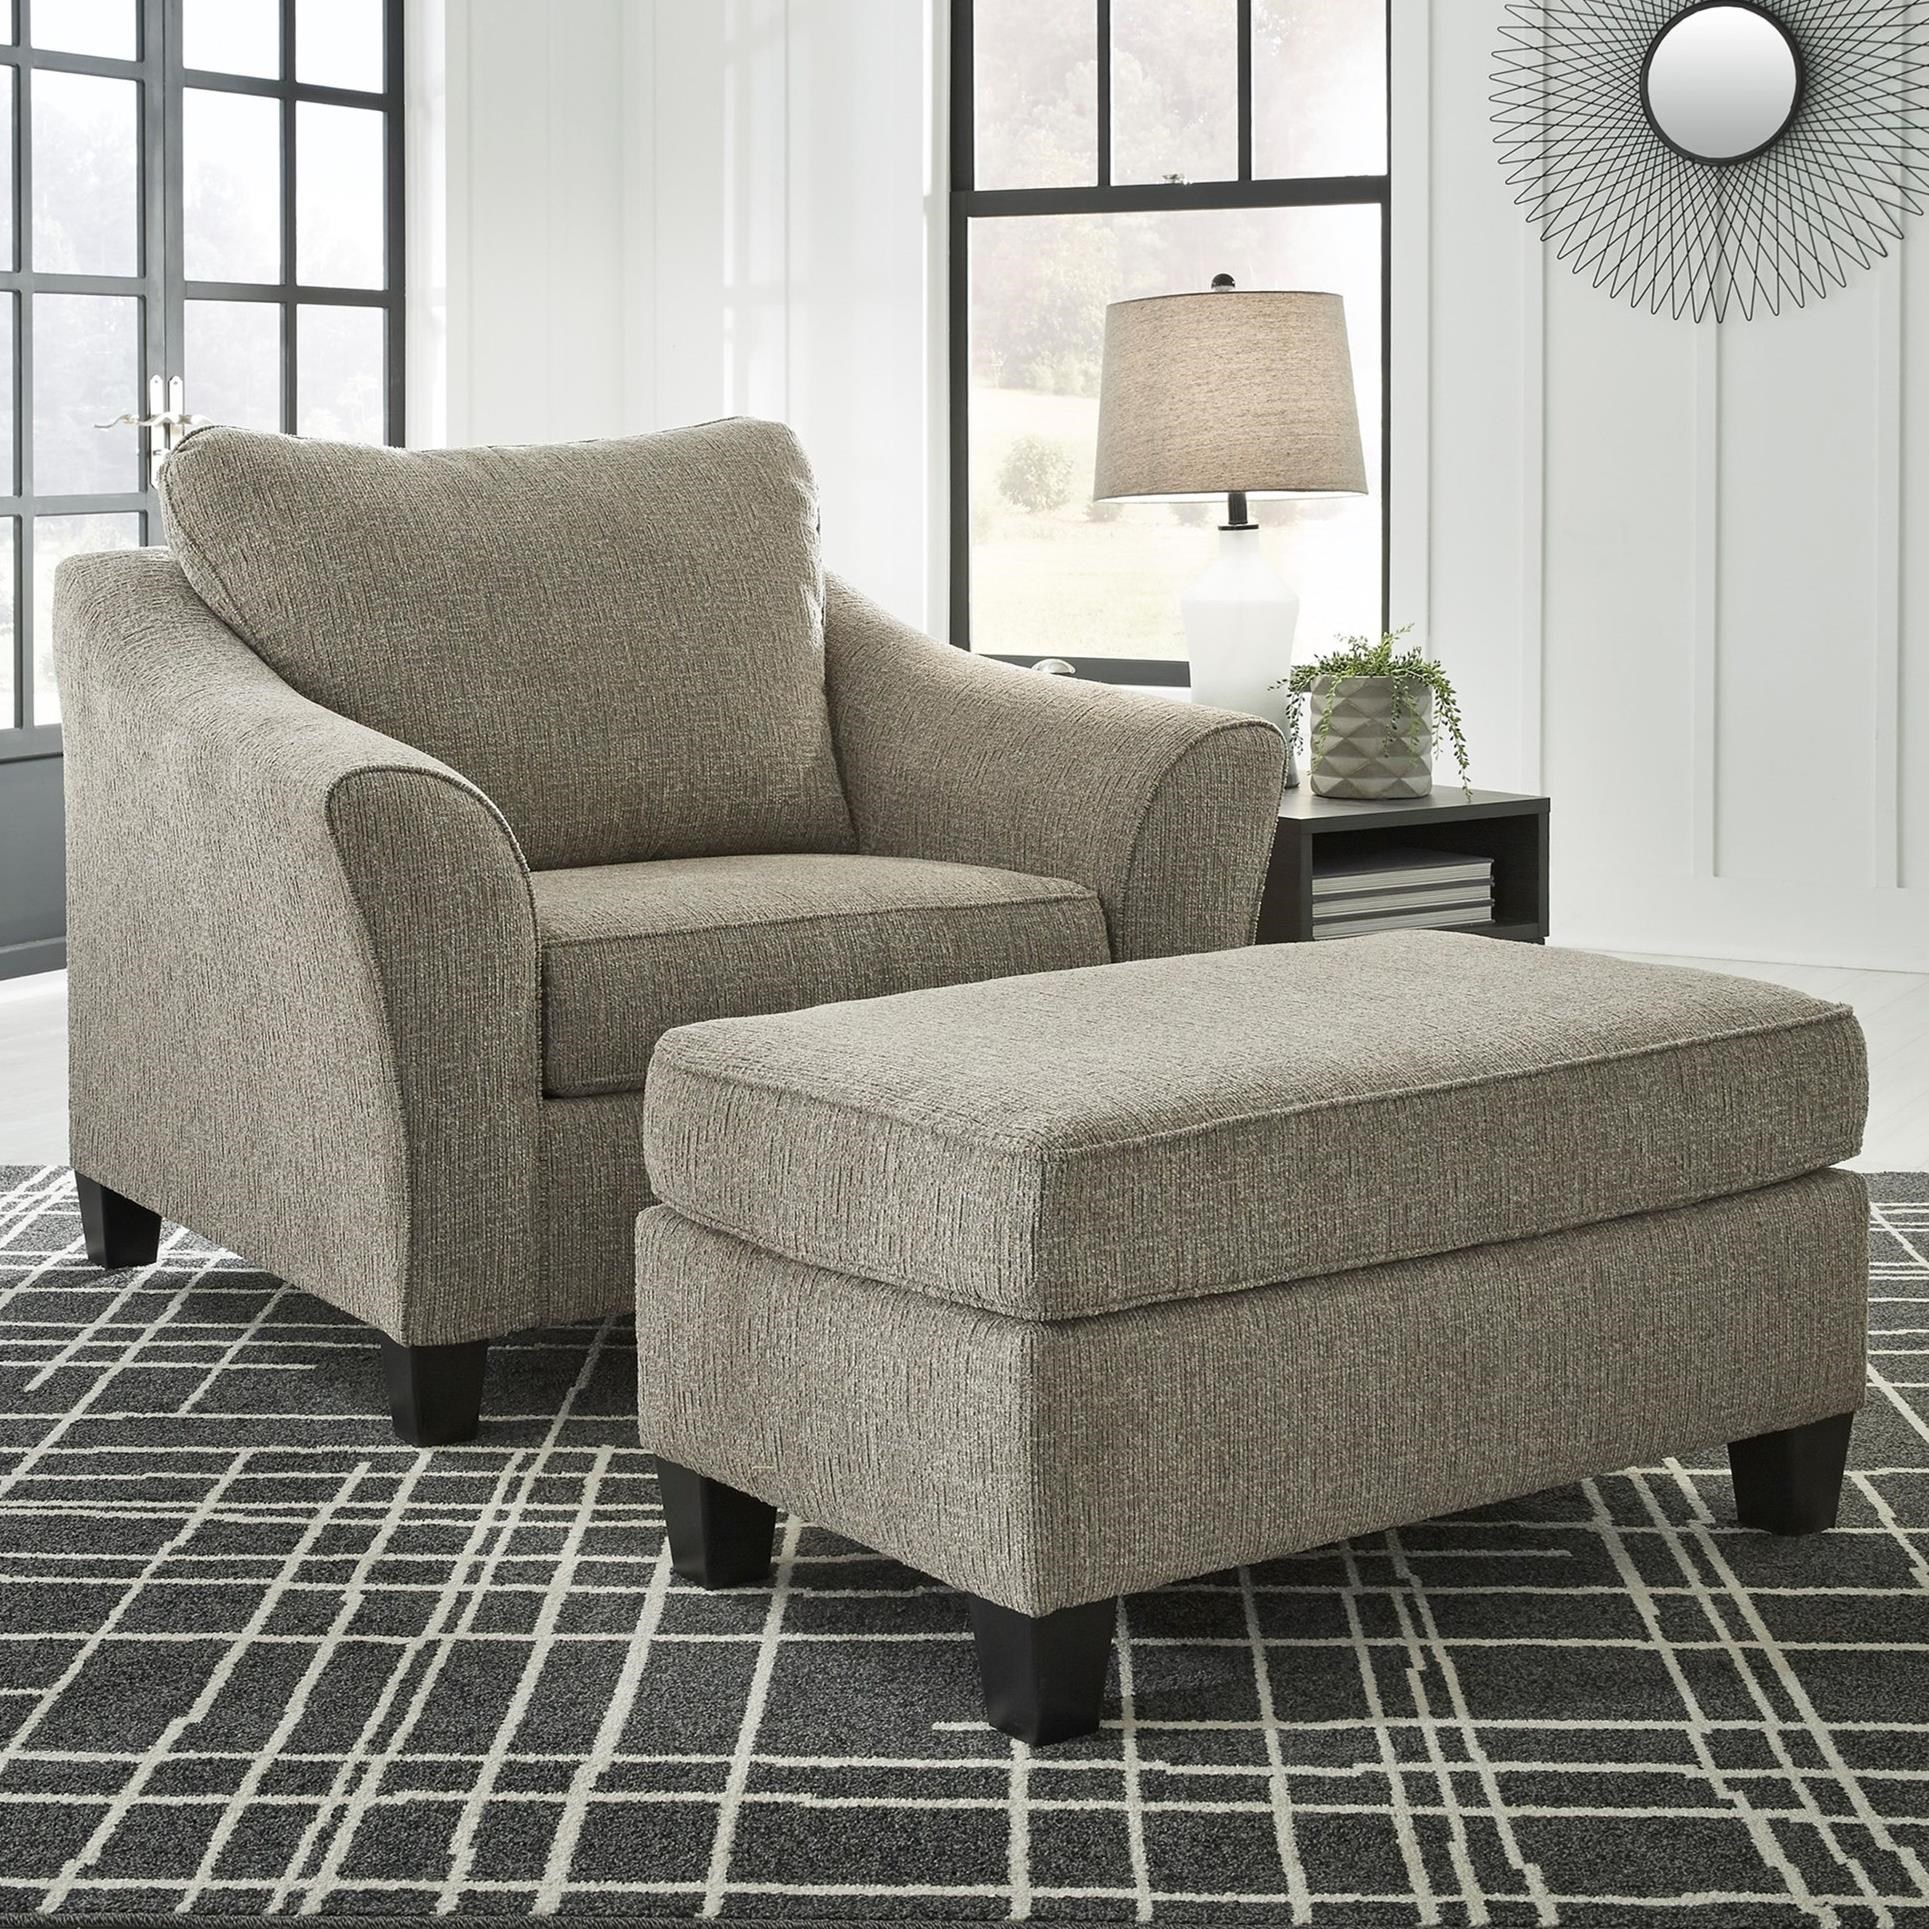 Barnesley Chair and a Half & Ottoman by Benchcraft at Standard Furniture